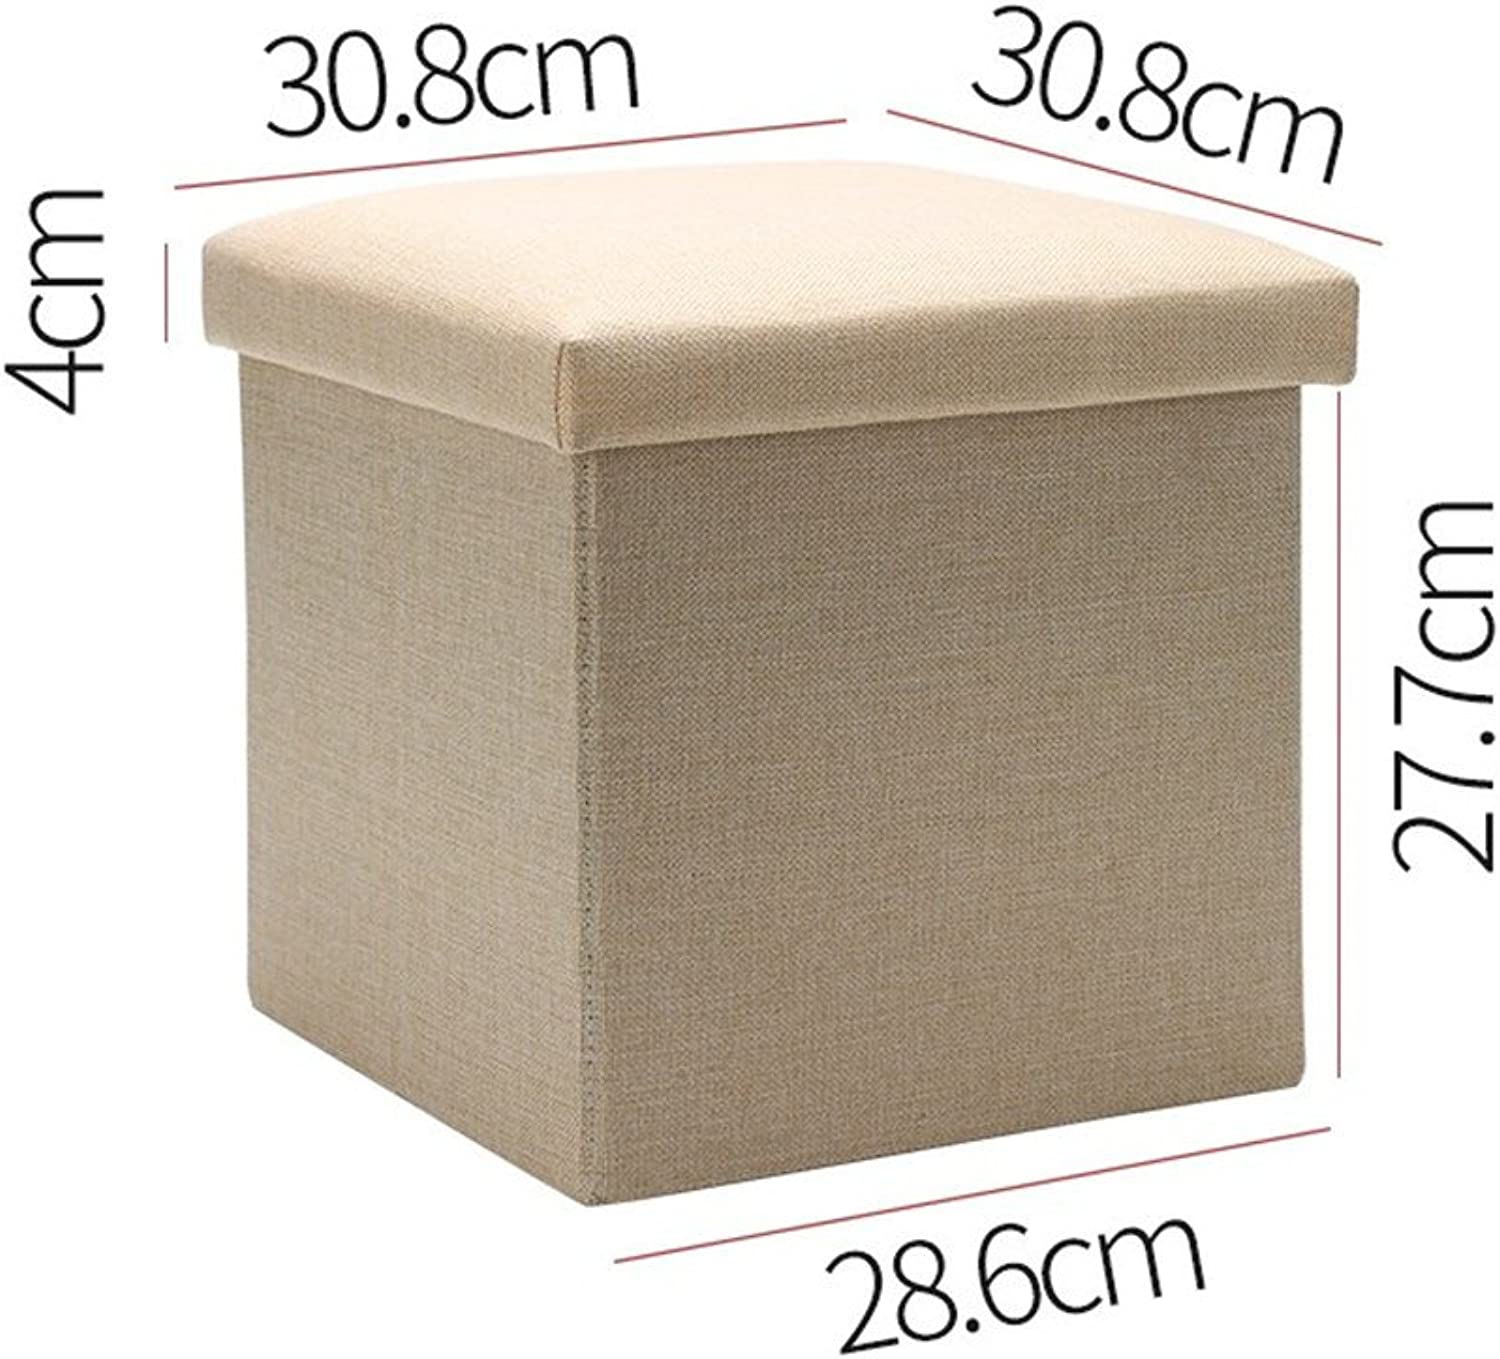 Fashion Fabric Stool,Creative Storage Stool Collection Box Portable Solid Wood shoes Change Stool for Entrance Office-Beige